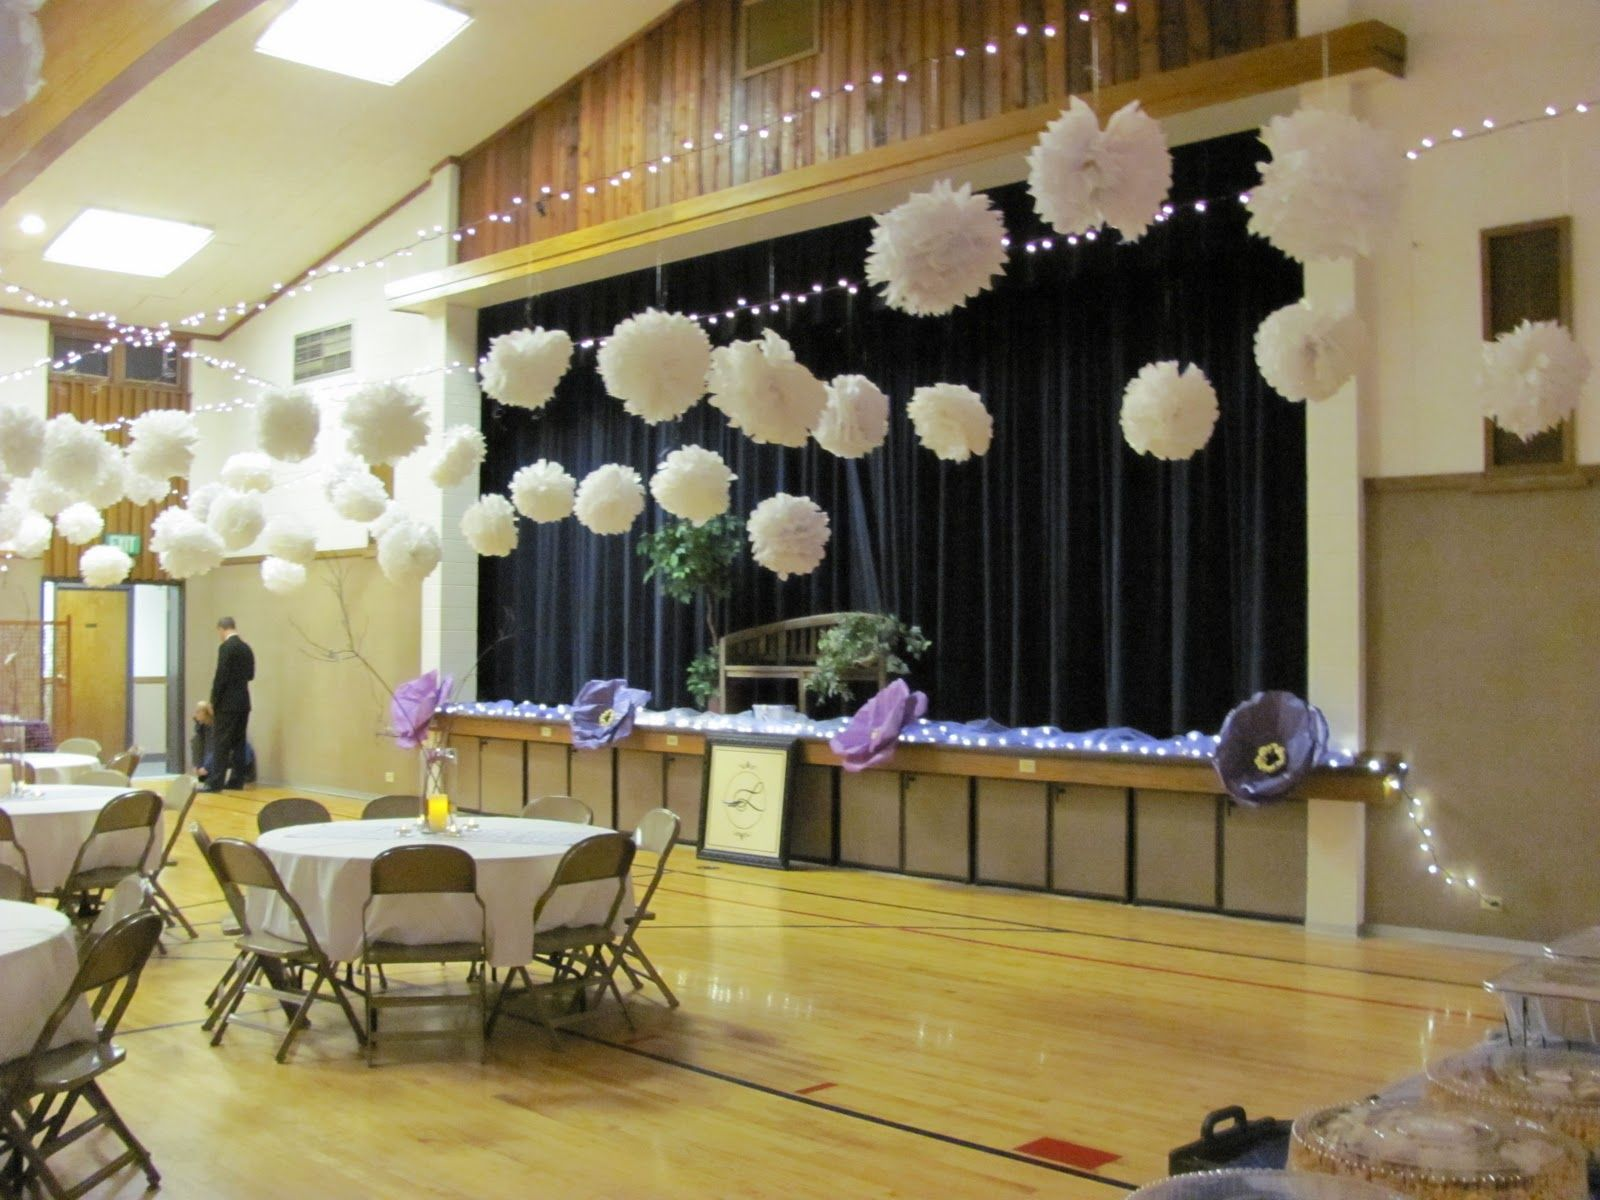 How to decorate a gym for a wedding google search wedding ideas how to decorate a gym for a wedding google search junglespirit Images